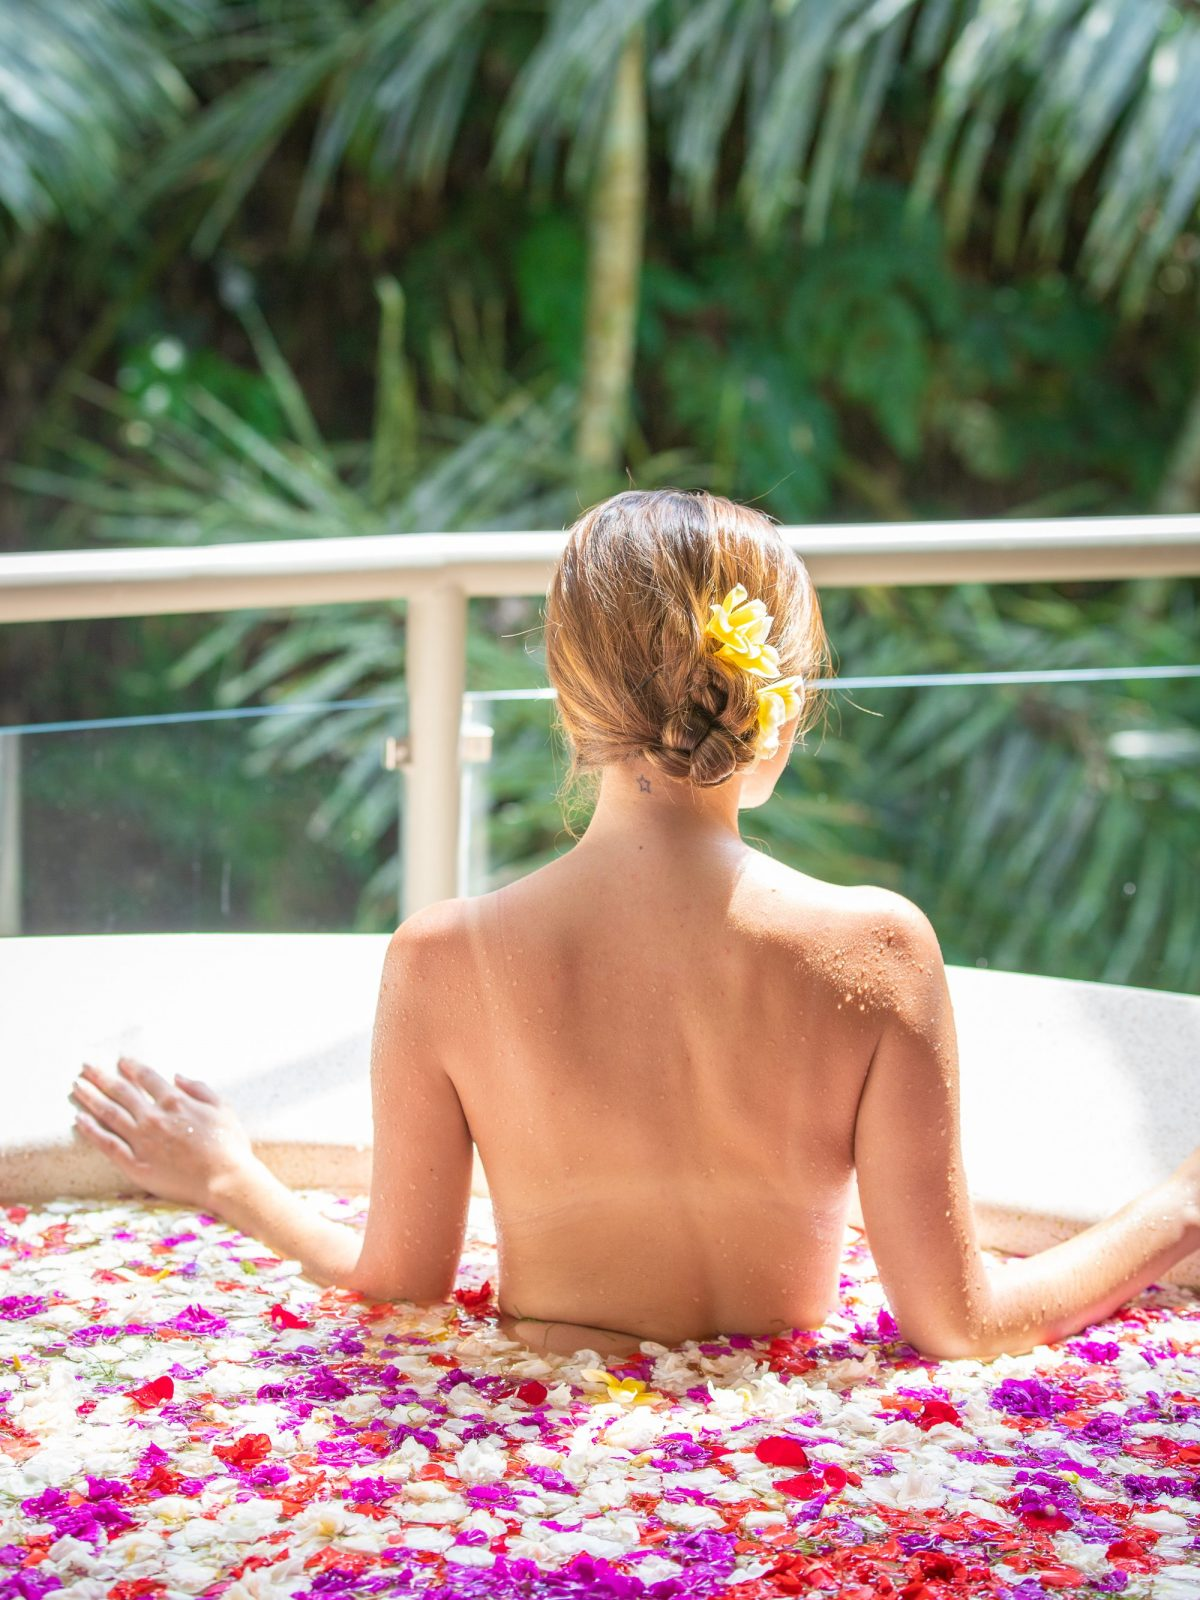 bali flower bath, where to have a flower bath in bali, sankara suites ubud, flower bath ubud, flower bath photos, sankara suites flower bath